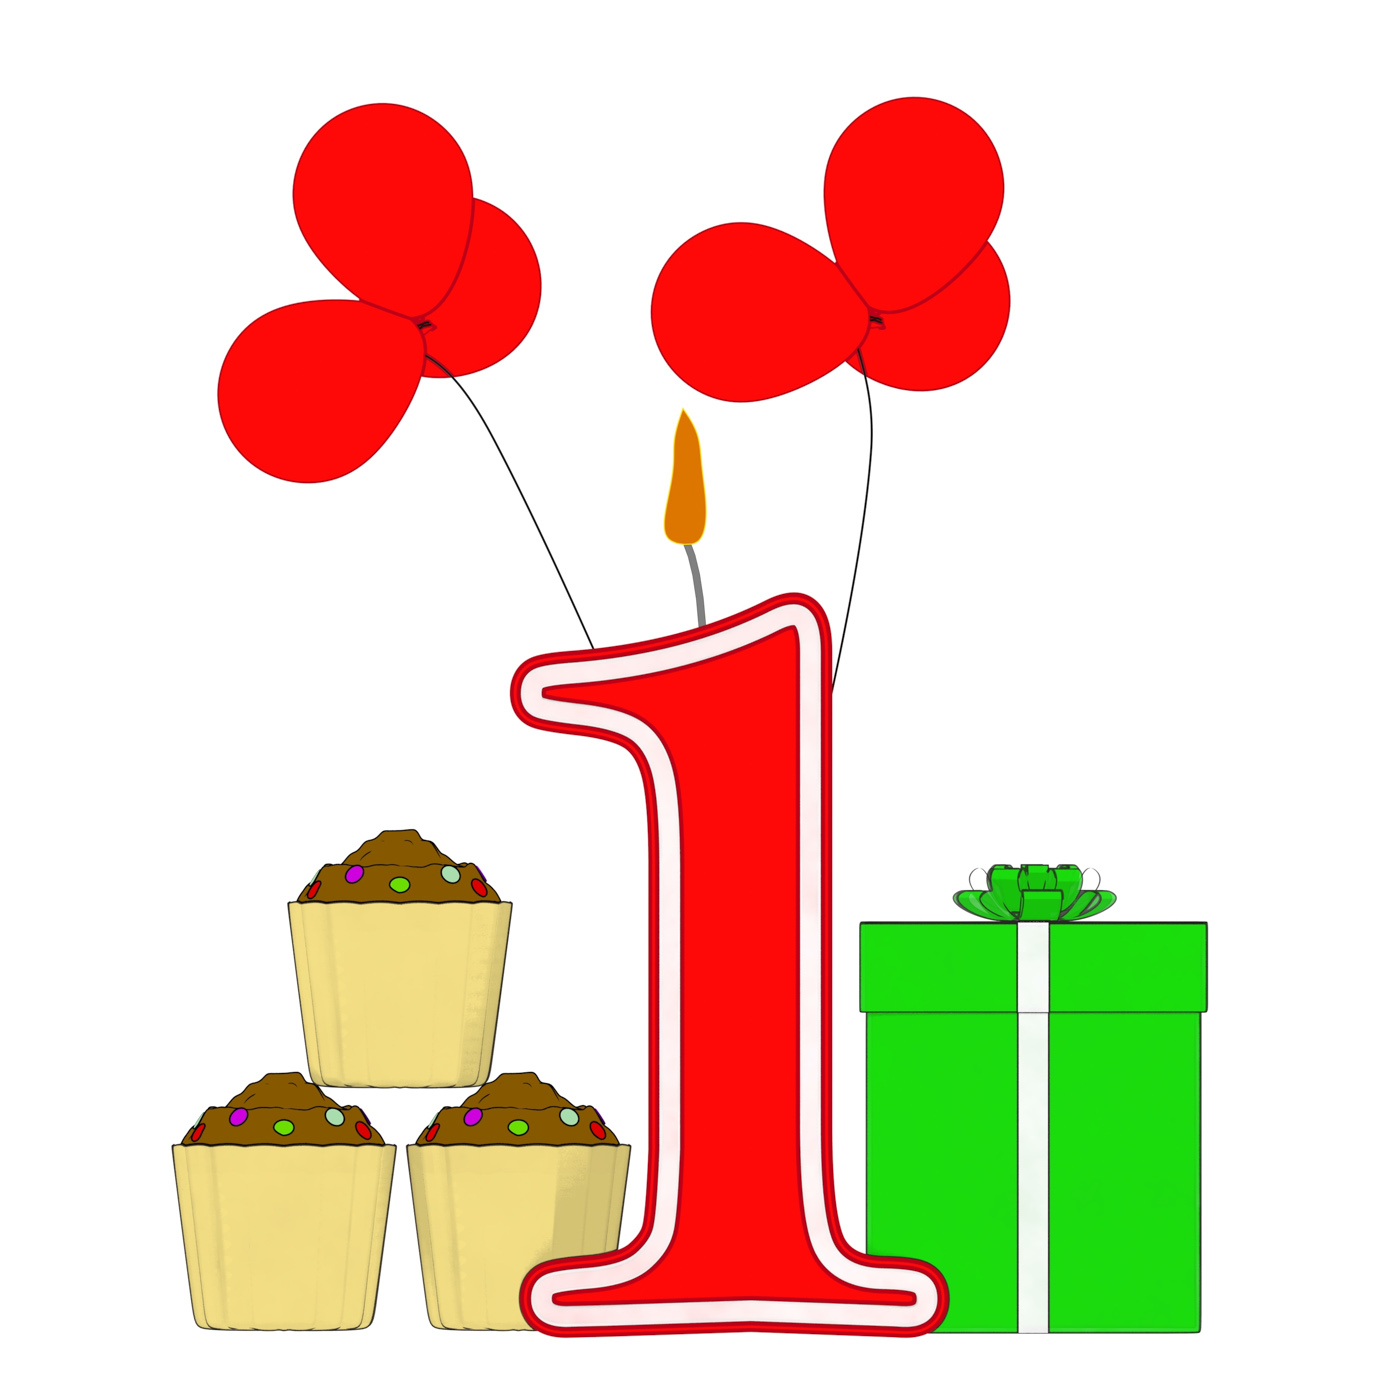 Number one candle shows one year birthday party or celebration photo